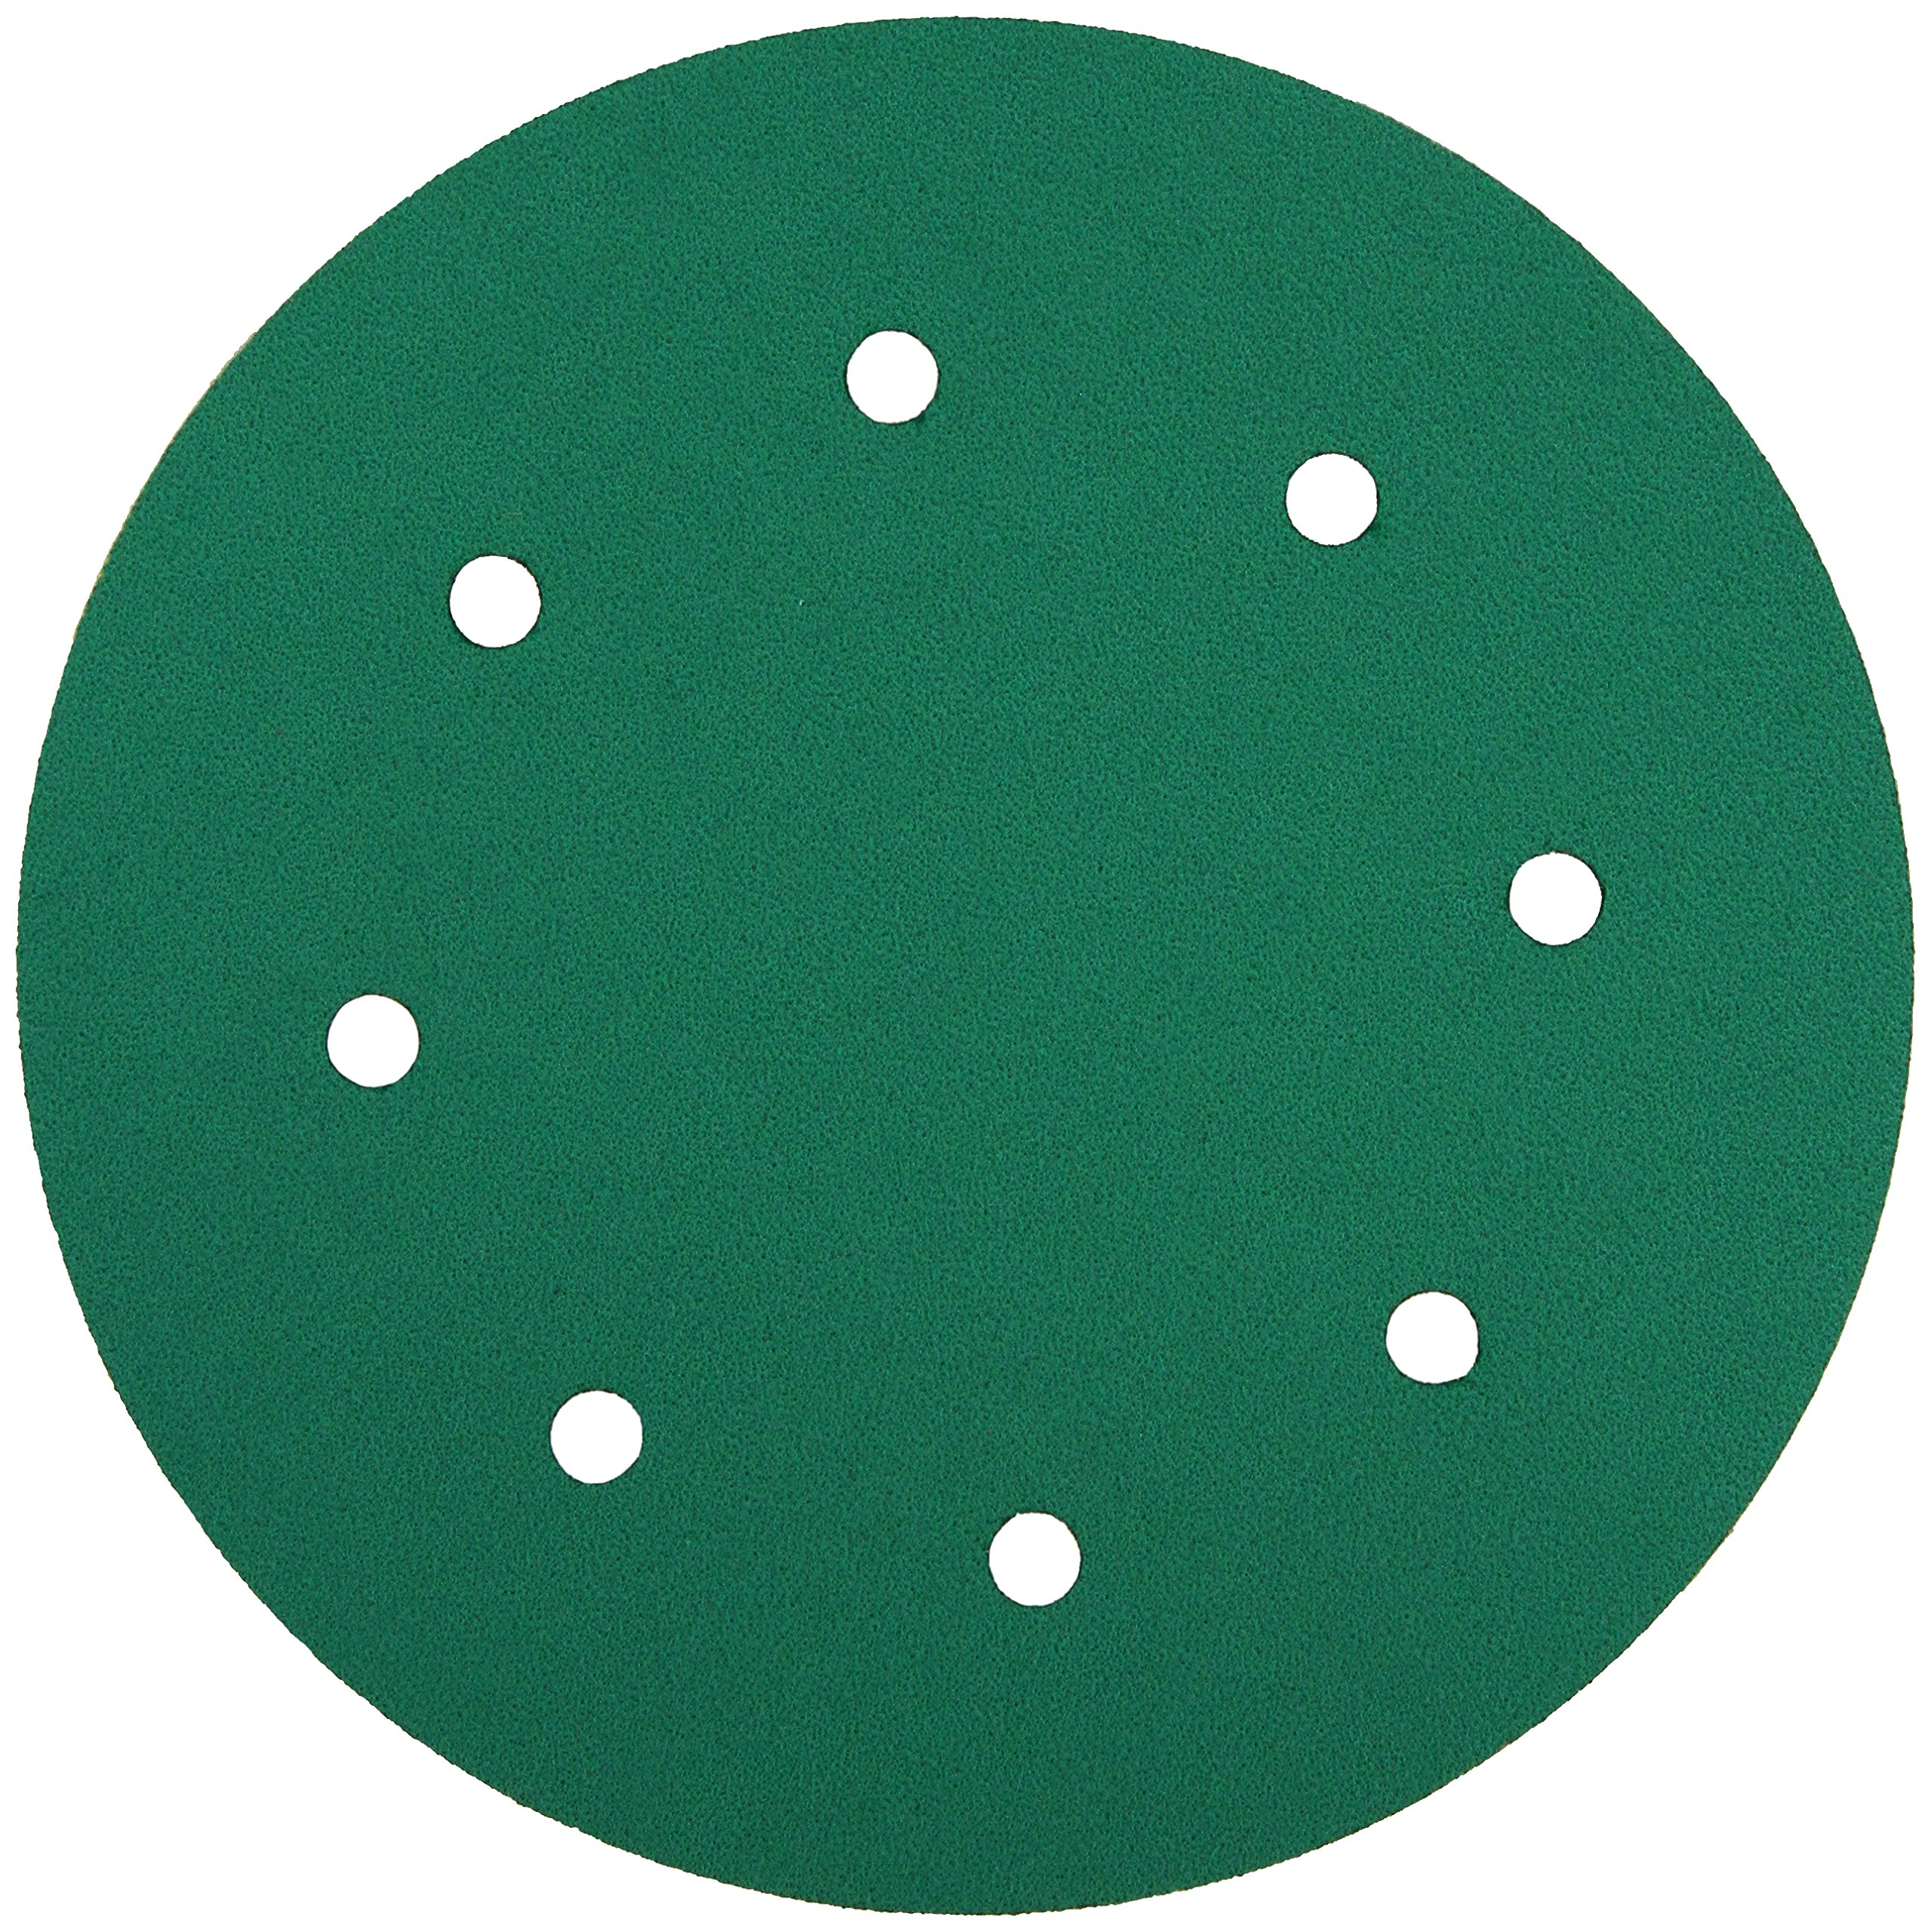 3M 01569 Green Corps Stikit 8'' 80D Grit Dust-Free Production Disc